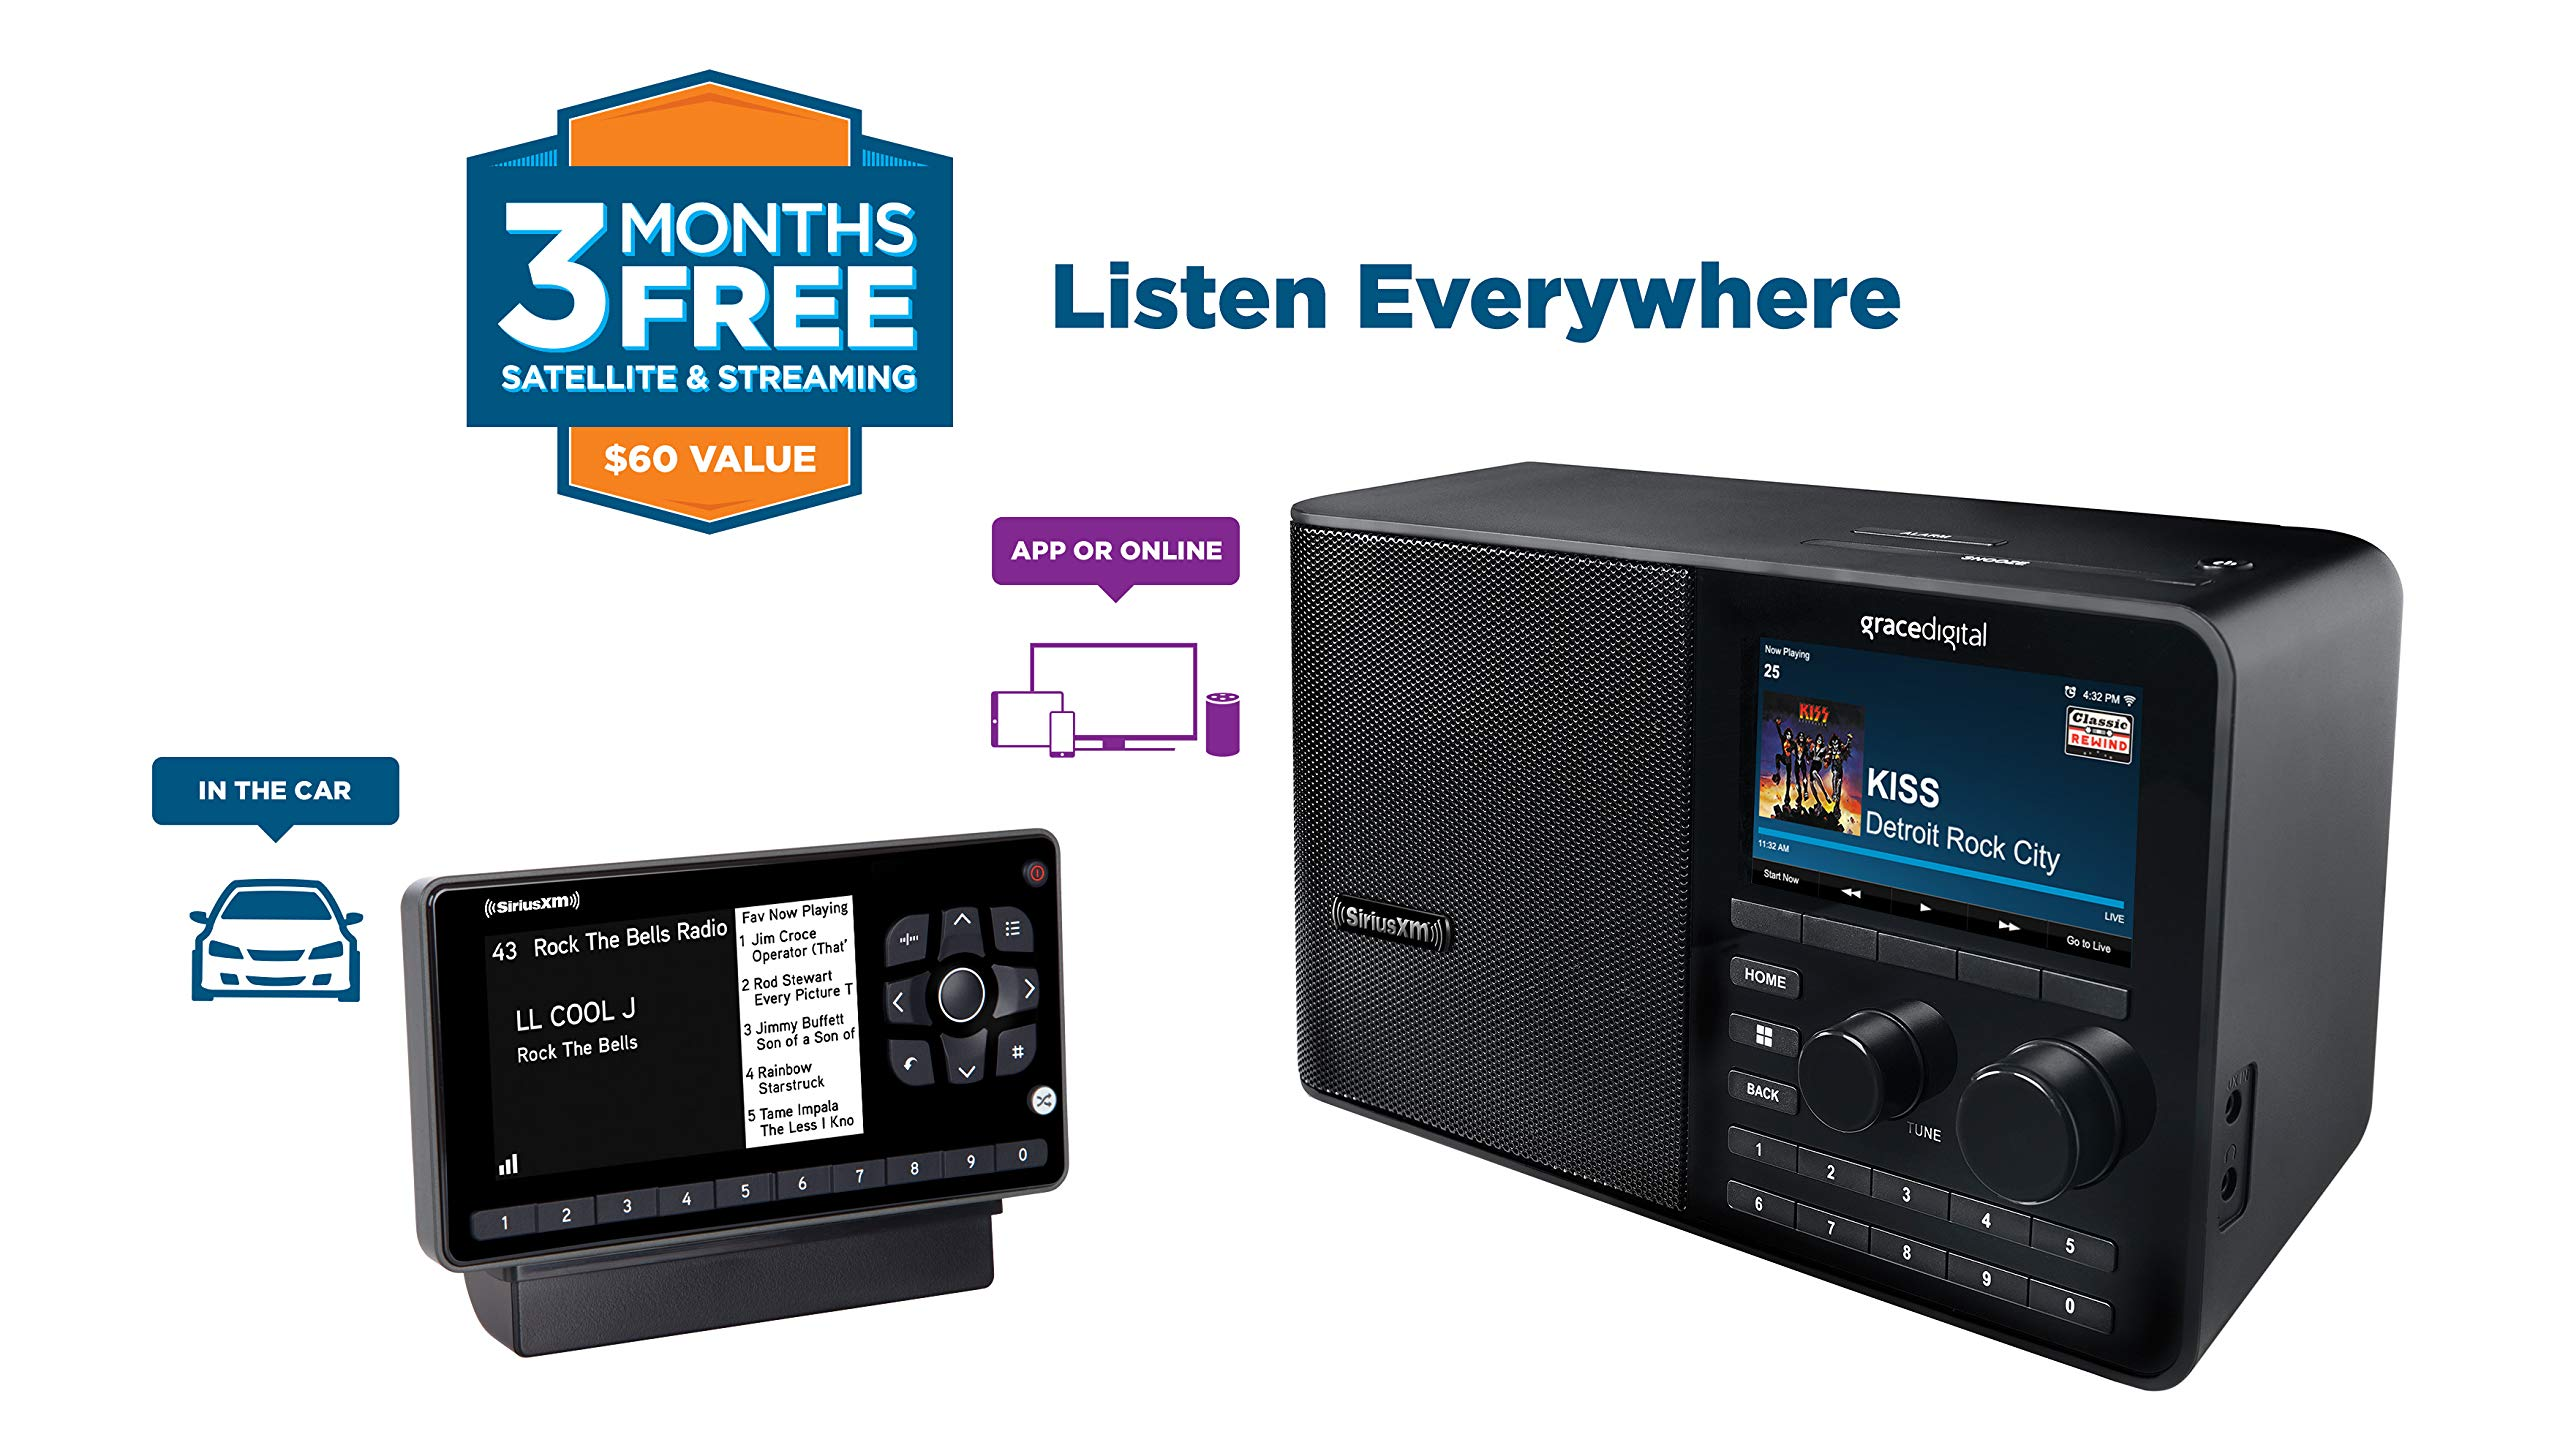 SiriusXM All Access Bundle Includes Onyx EZR Vehicle Dock and Play (SXEZR1V1) and SiriusXM Wi-Fi Table Radio (GDISXTTR2) by SiriusXM